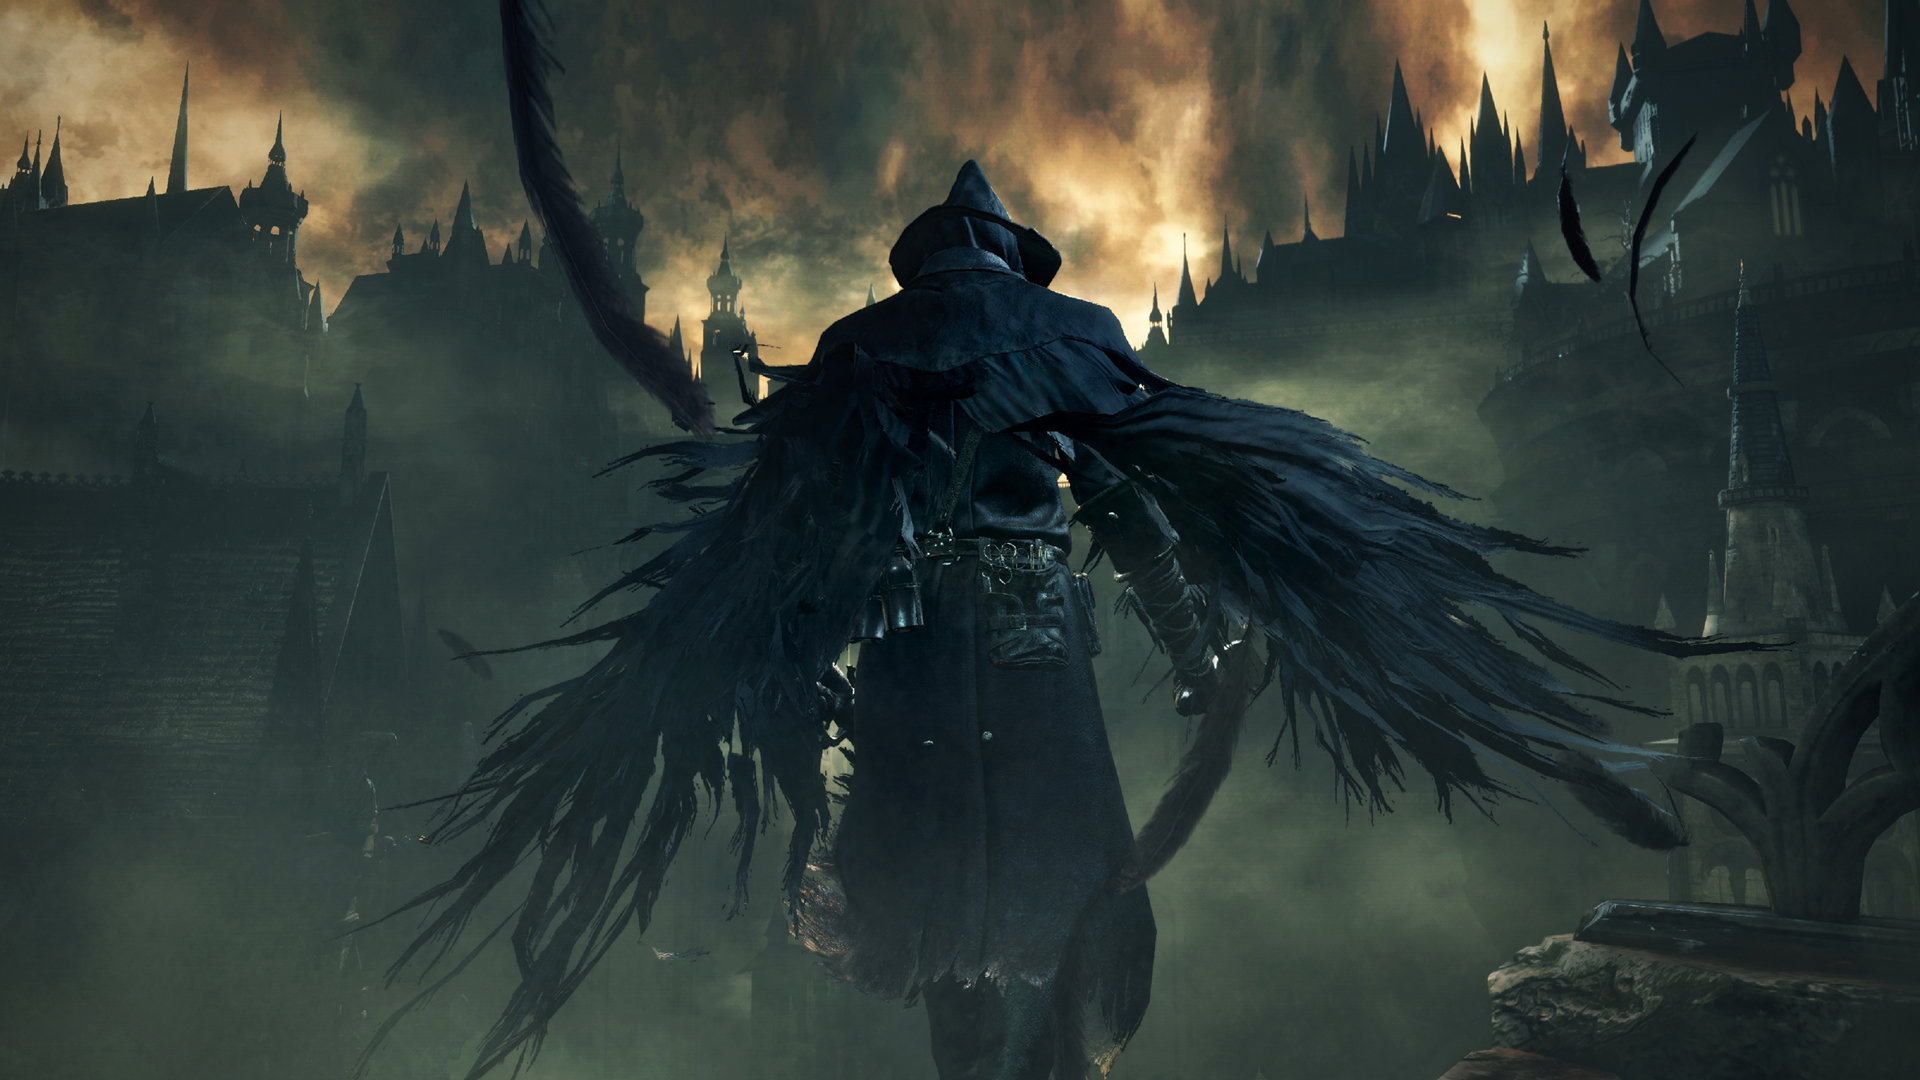 Download Hd 1080p Bloodborne Computer Wallpaper ID61981 For Free